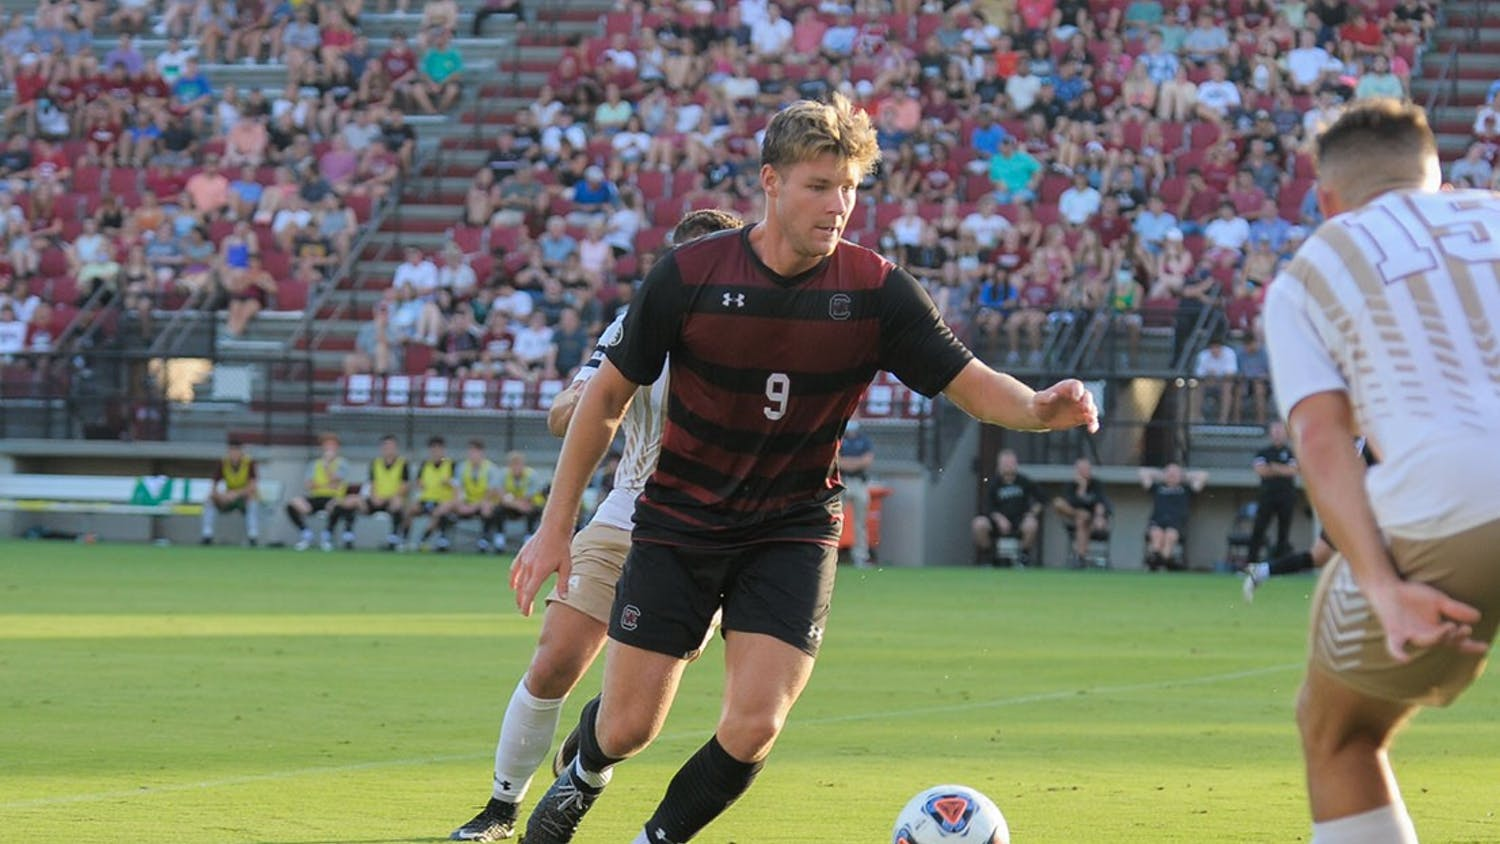 Sophomore defender Christian Kraus receives a pass from a teammate during the season opener against the College of Charleston Cougars. The Cougars beat the Gamecocks 1-0 with a goal during overtime.